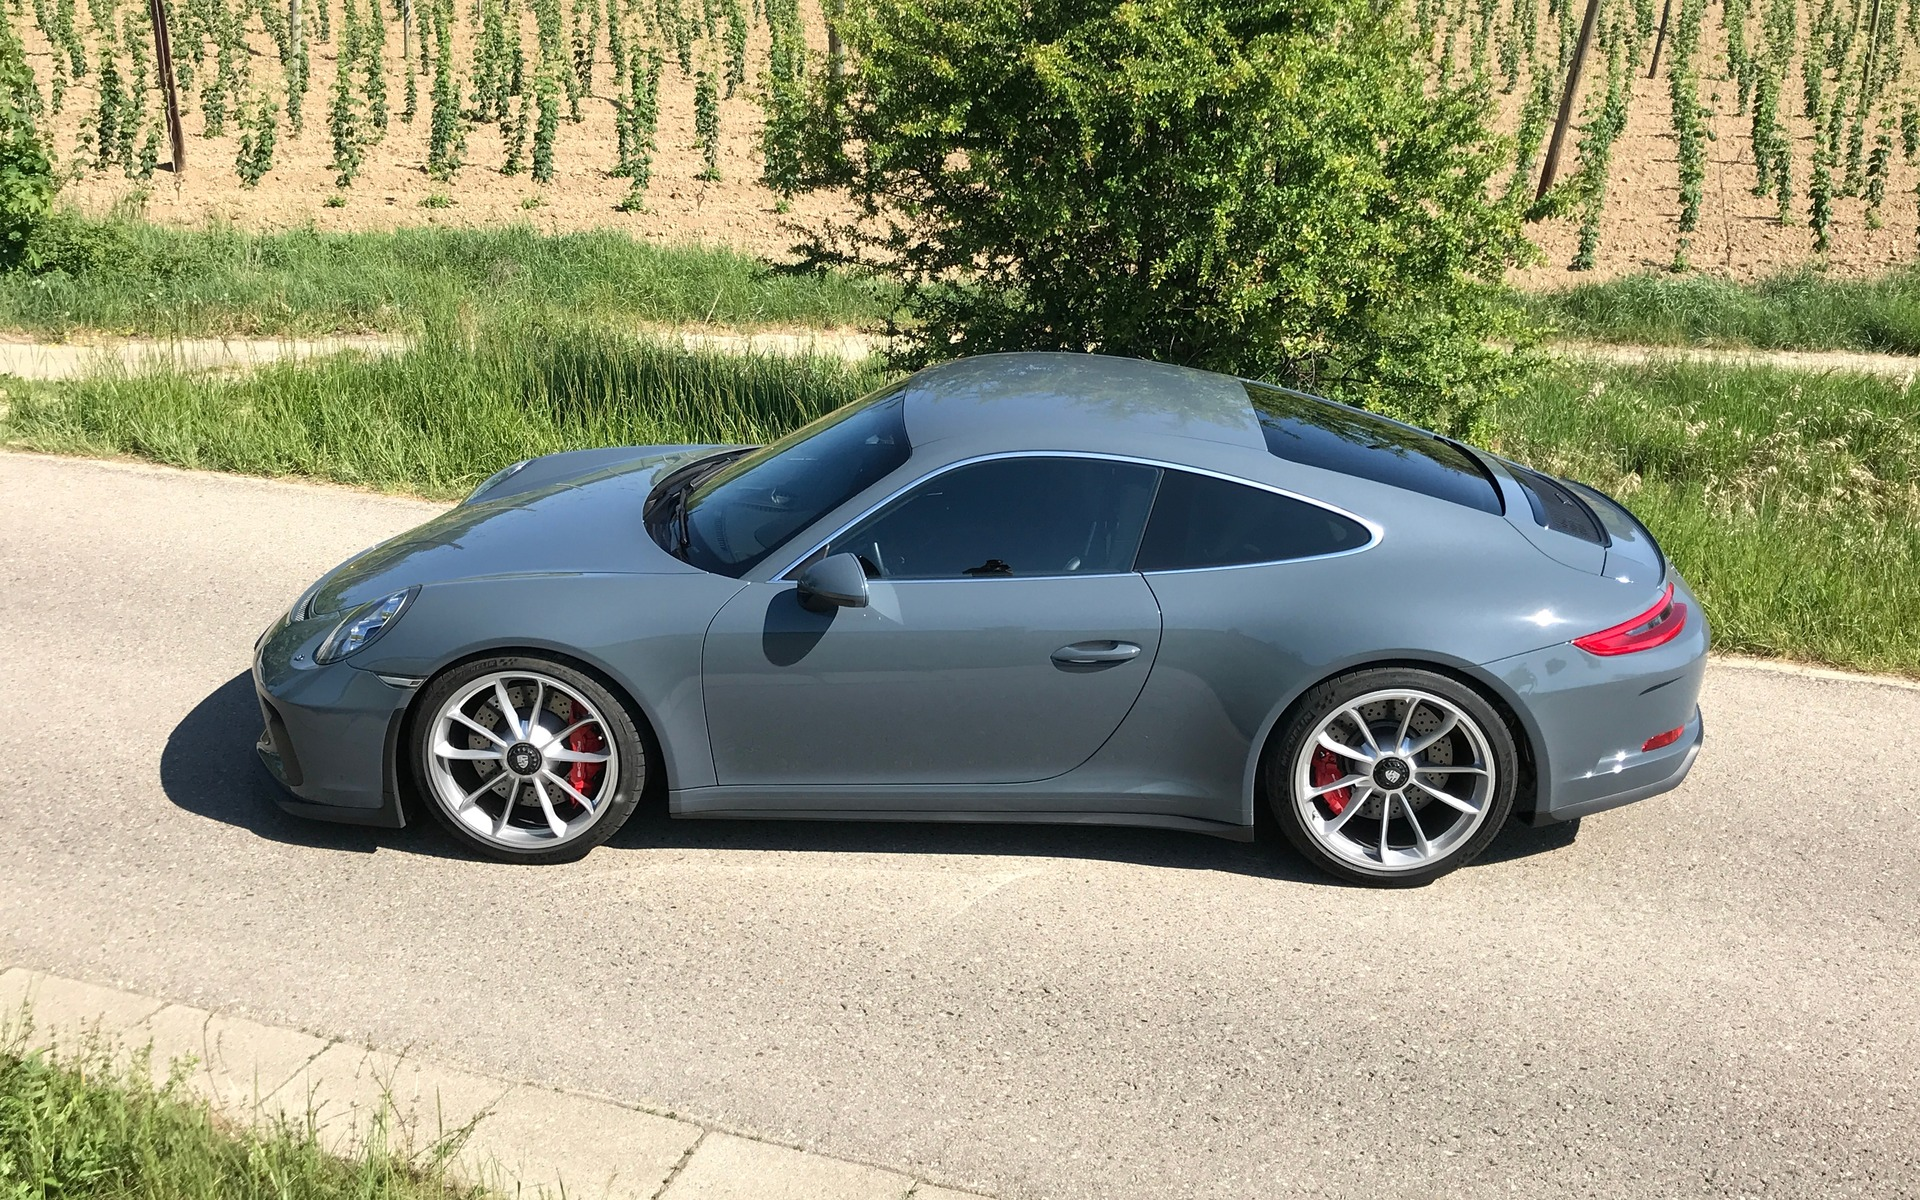 2018 Porsche 911 Gt3 >> 2018 Porsche 911 GT3 Touring: it's All About the Wing - 2/23